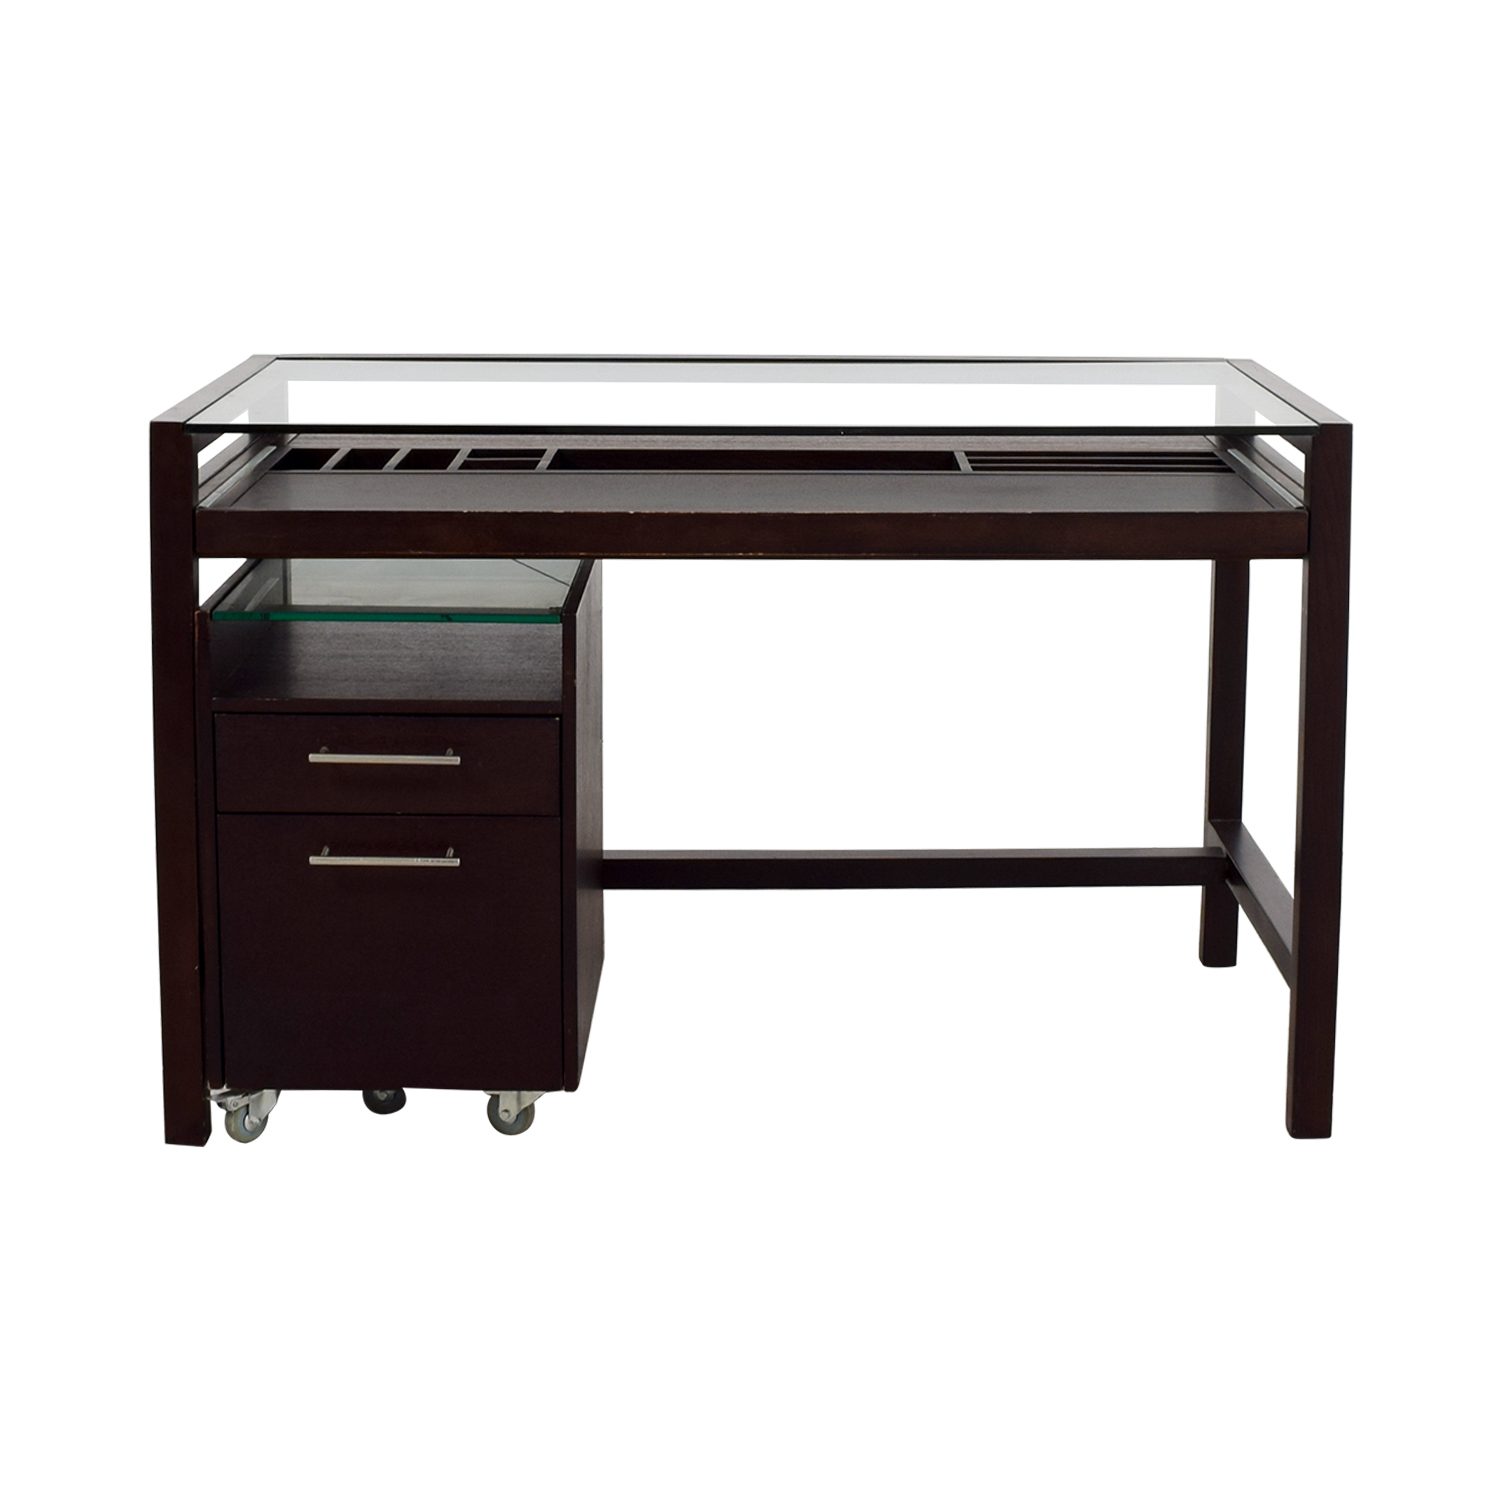 90 Off Glass Top Dark Brown Wood Desk With File Cabinet